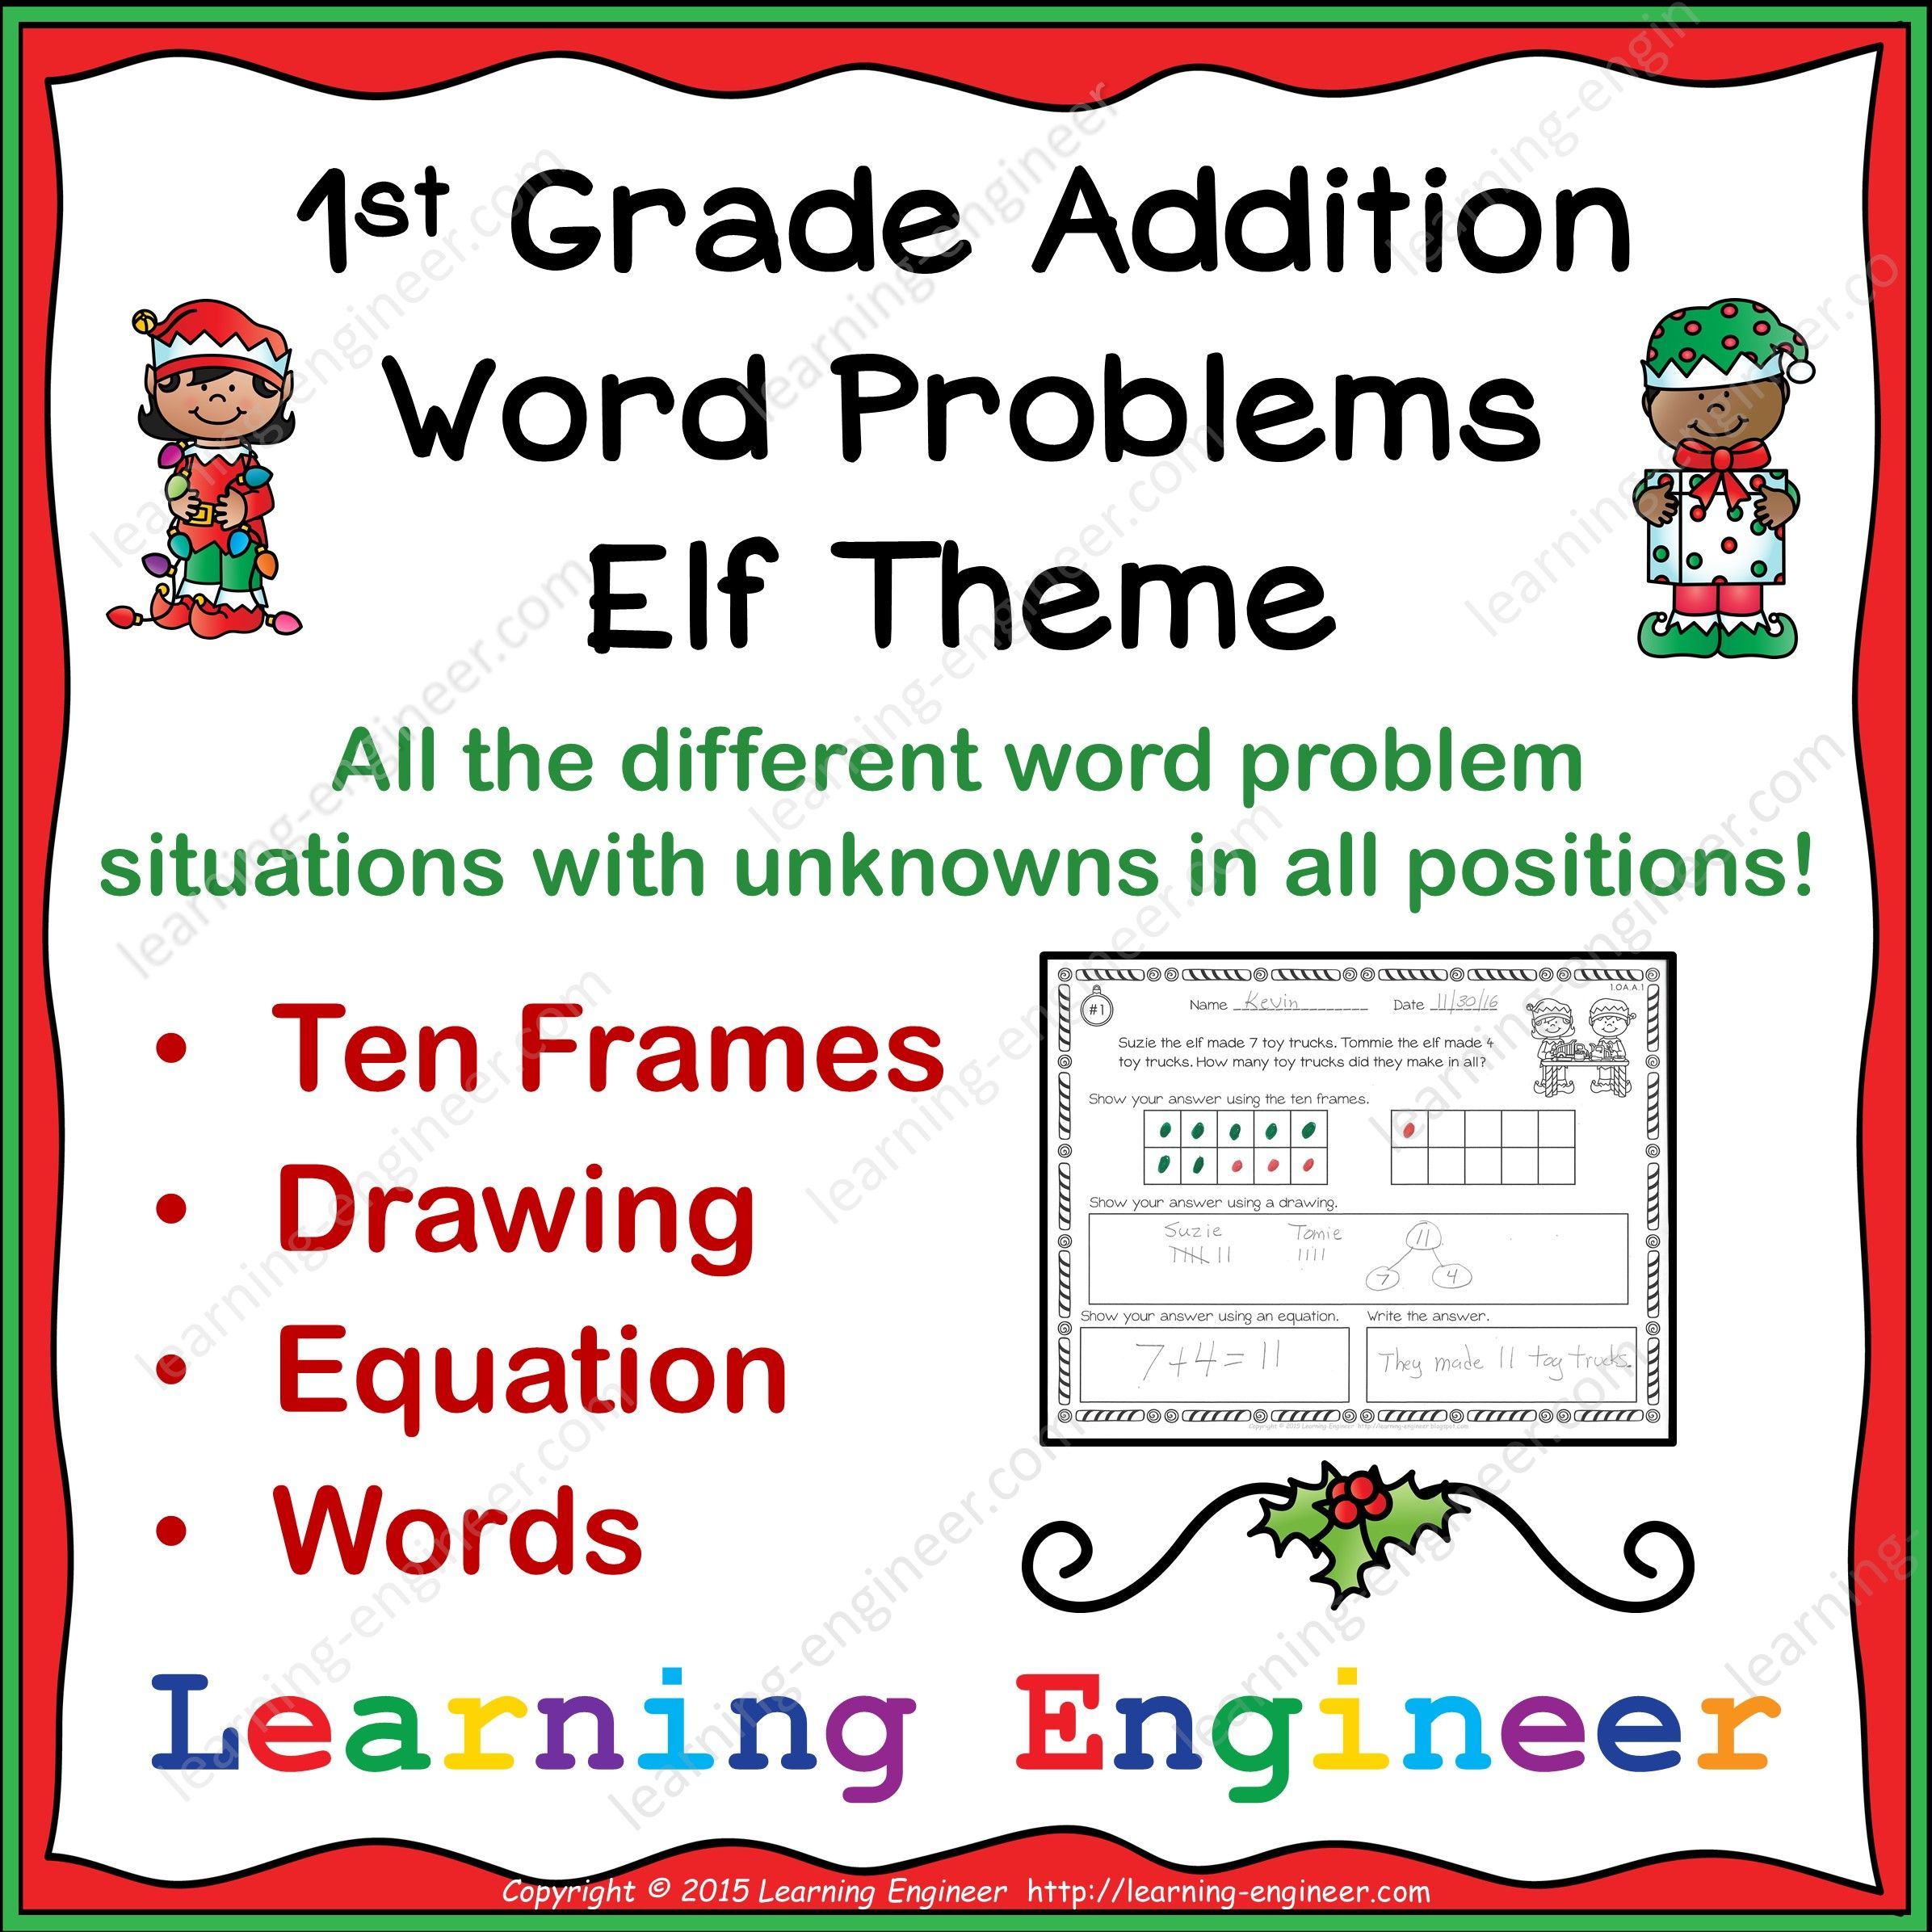 1st Grade Addition Word Problems